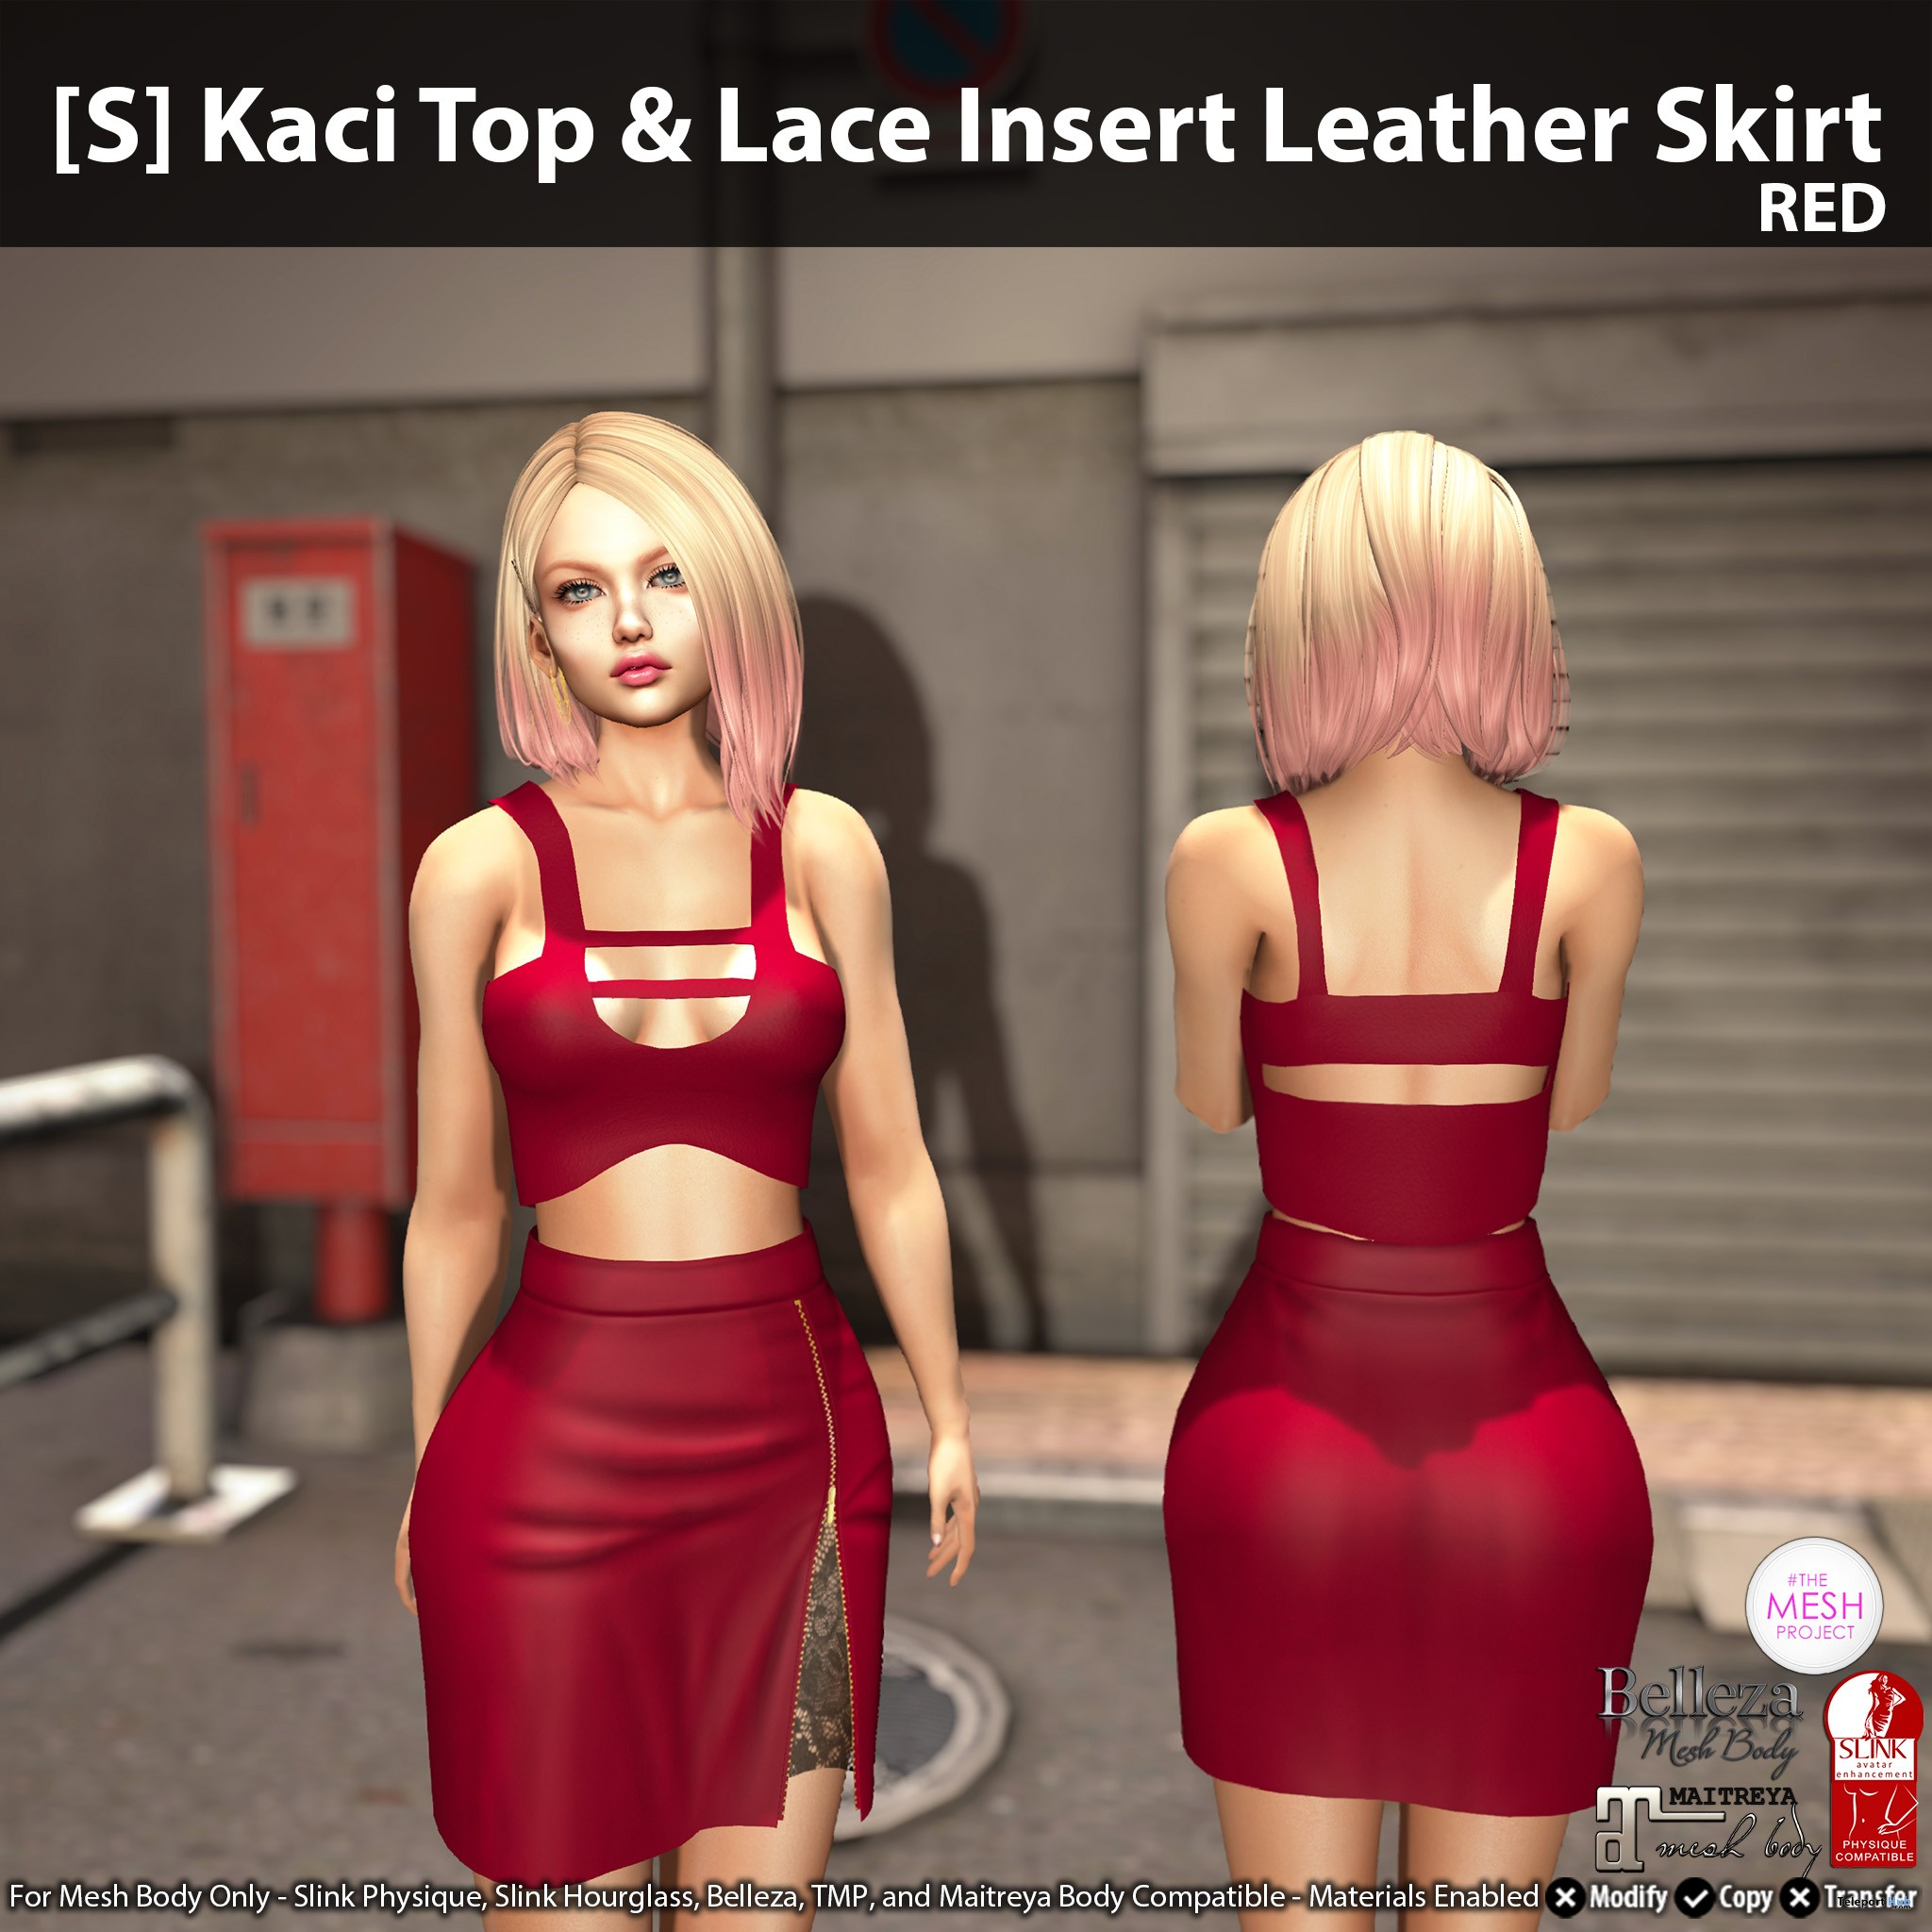 New Release: [S] Kaci Top & Lace Insert Leather Skirt by [satus Inc] - Teleport Hub - teleporthub.com